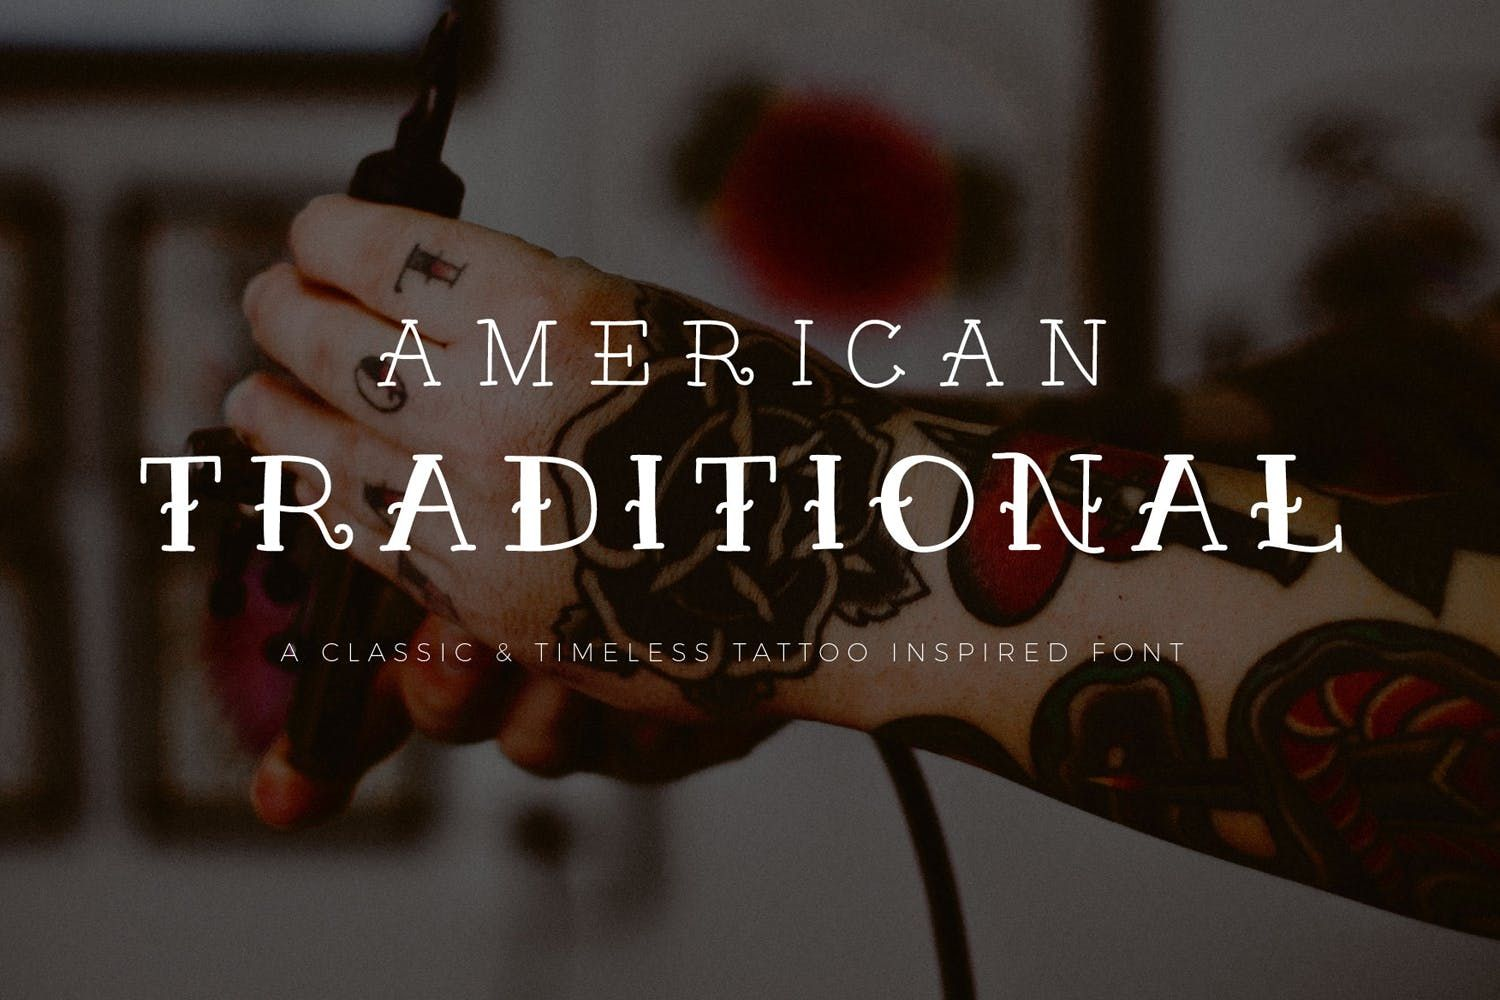 American Traditional by thinkmake on American